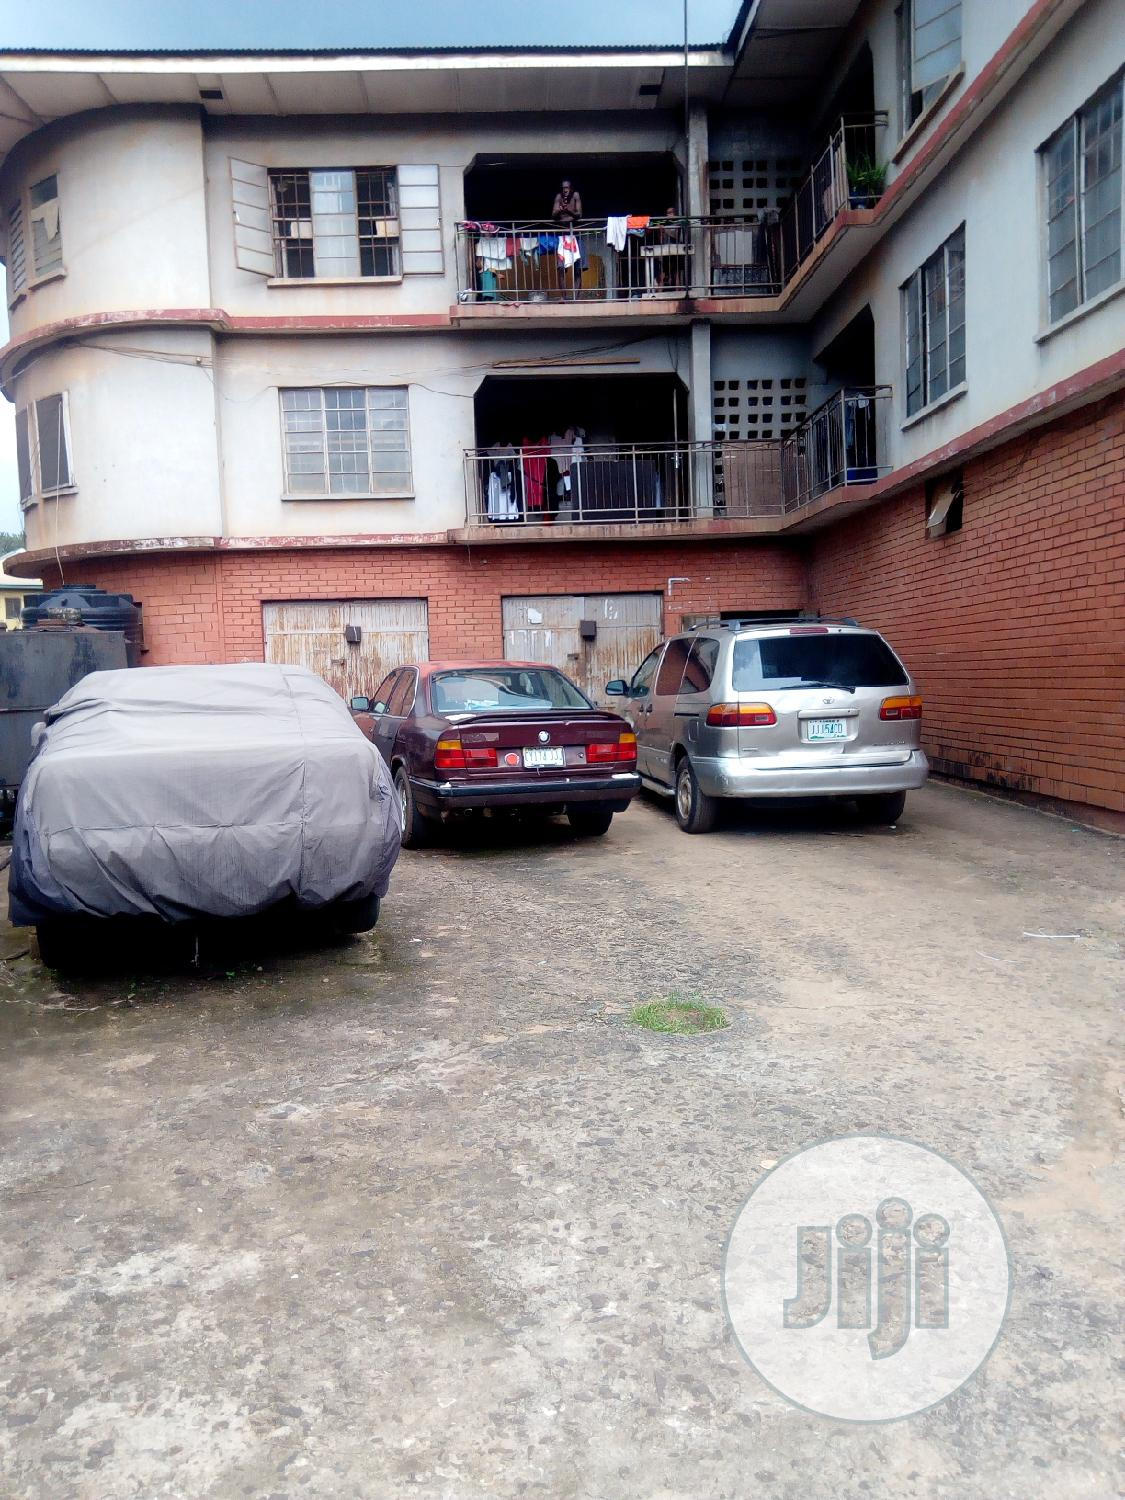 3 Bedroom Of 6 Flat For Sale | Houses & Apartments For Sale for sale in Nnewi, Anambra State, Nigeria